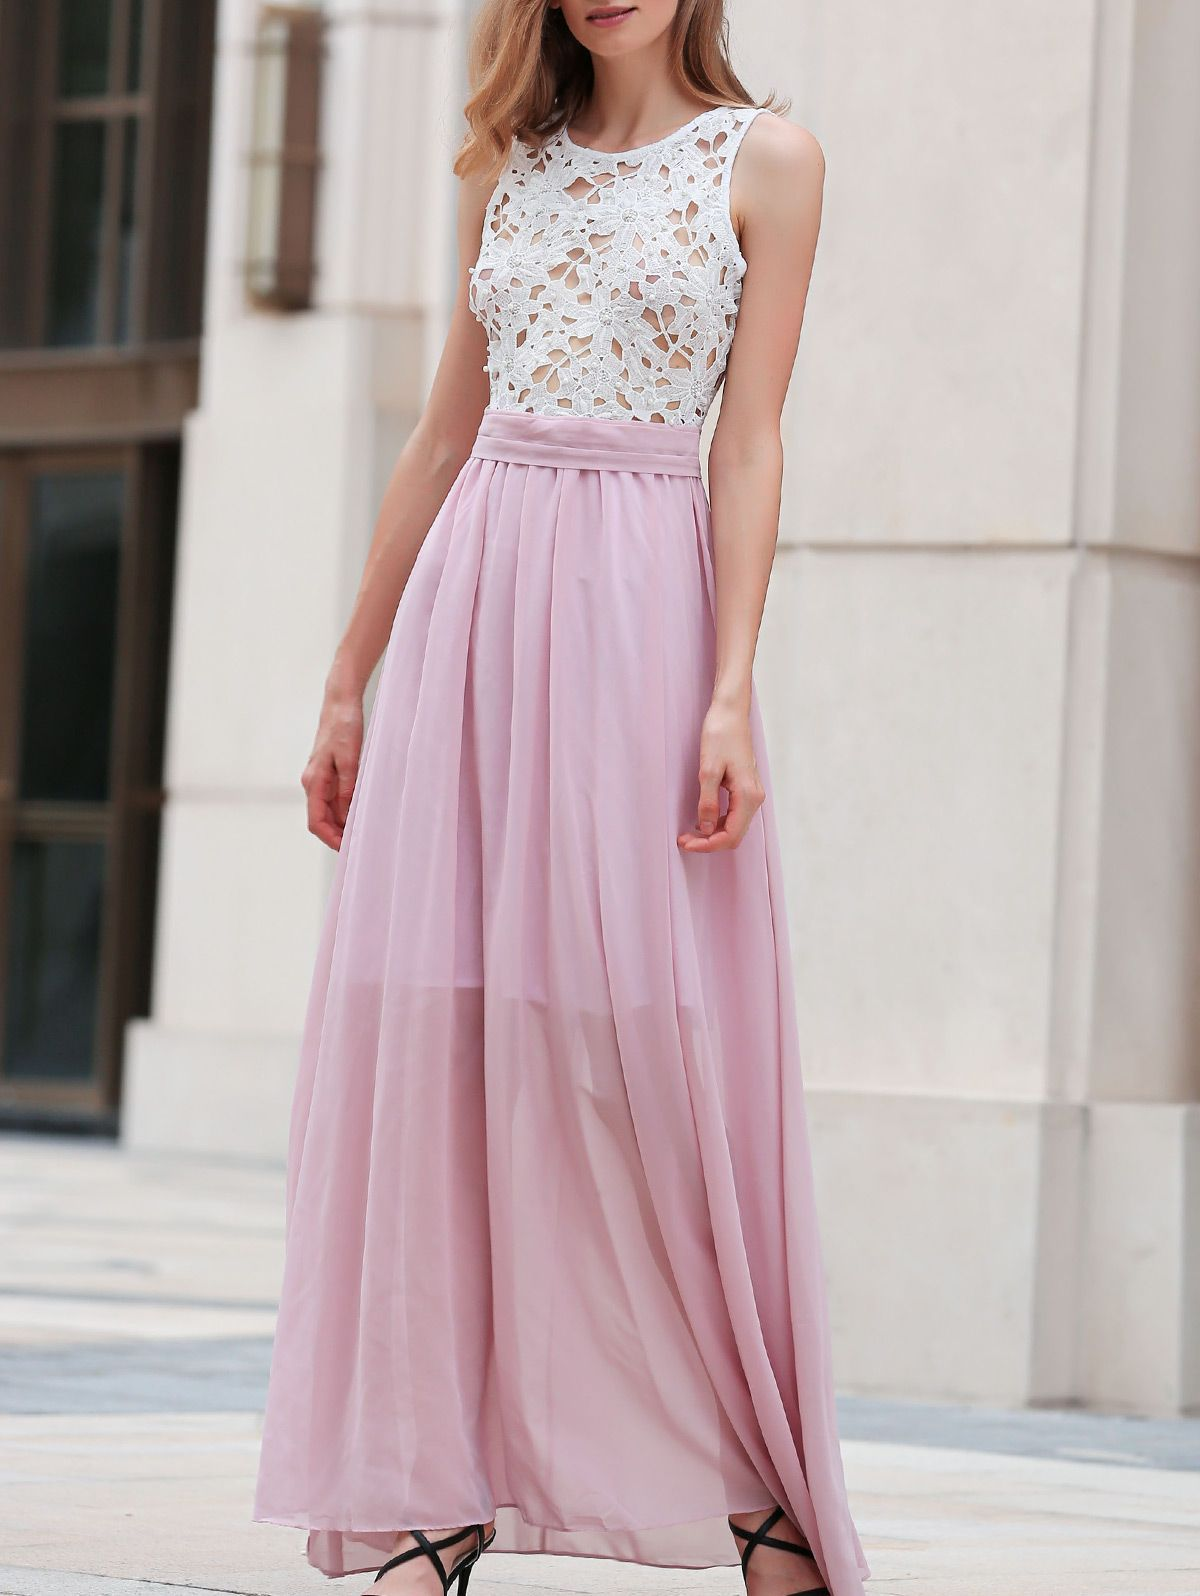 Lace splice round neck pink prom dress more clothes please